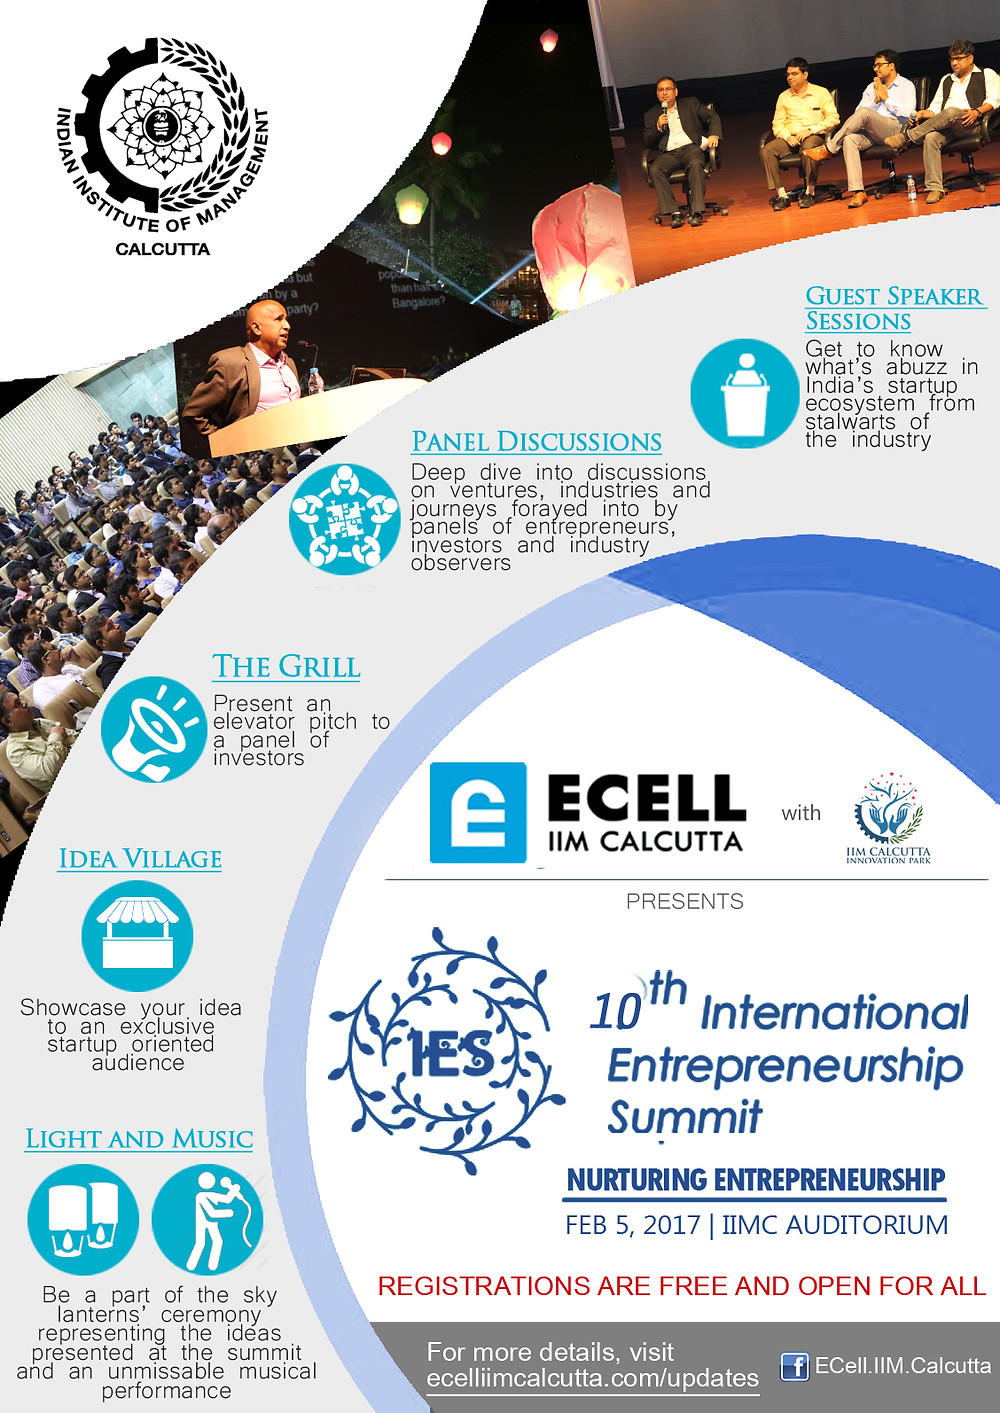 10th International Entrepreneurship Summit